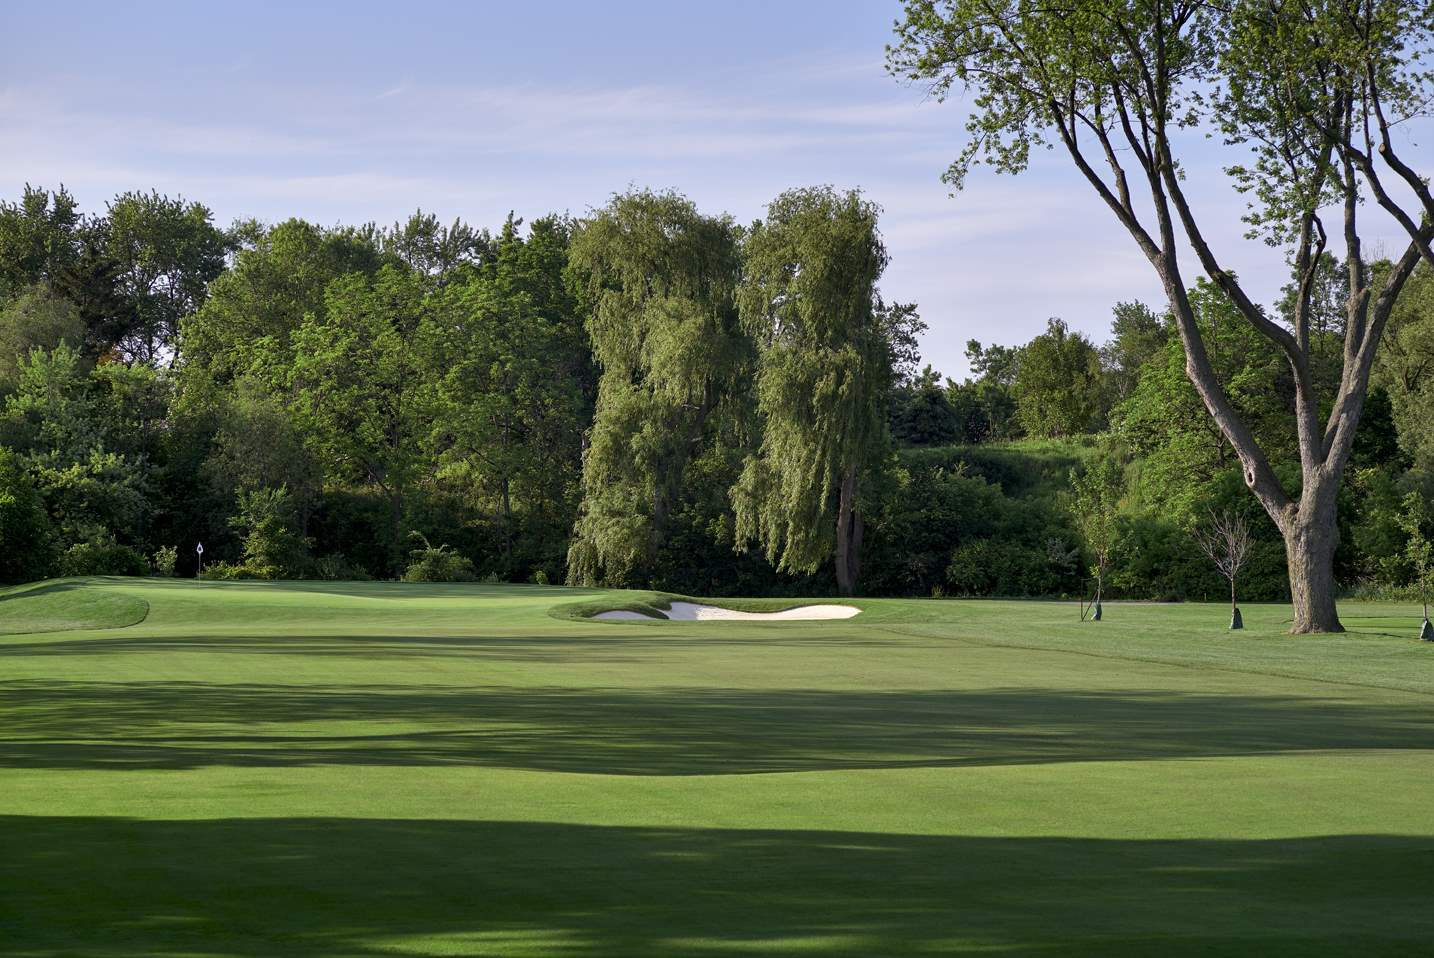 hole_11_IslingtonGC_2015-06-17_1005653_WEB